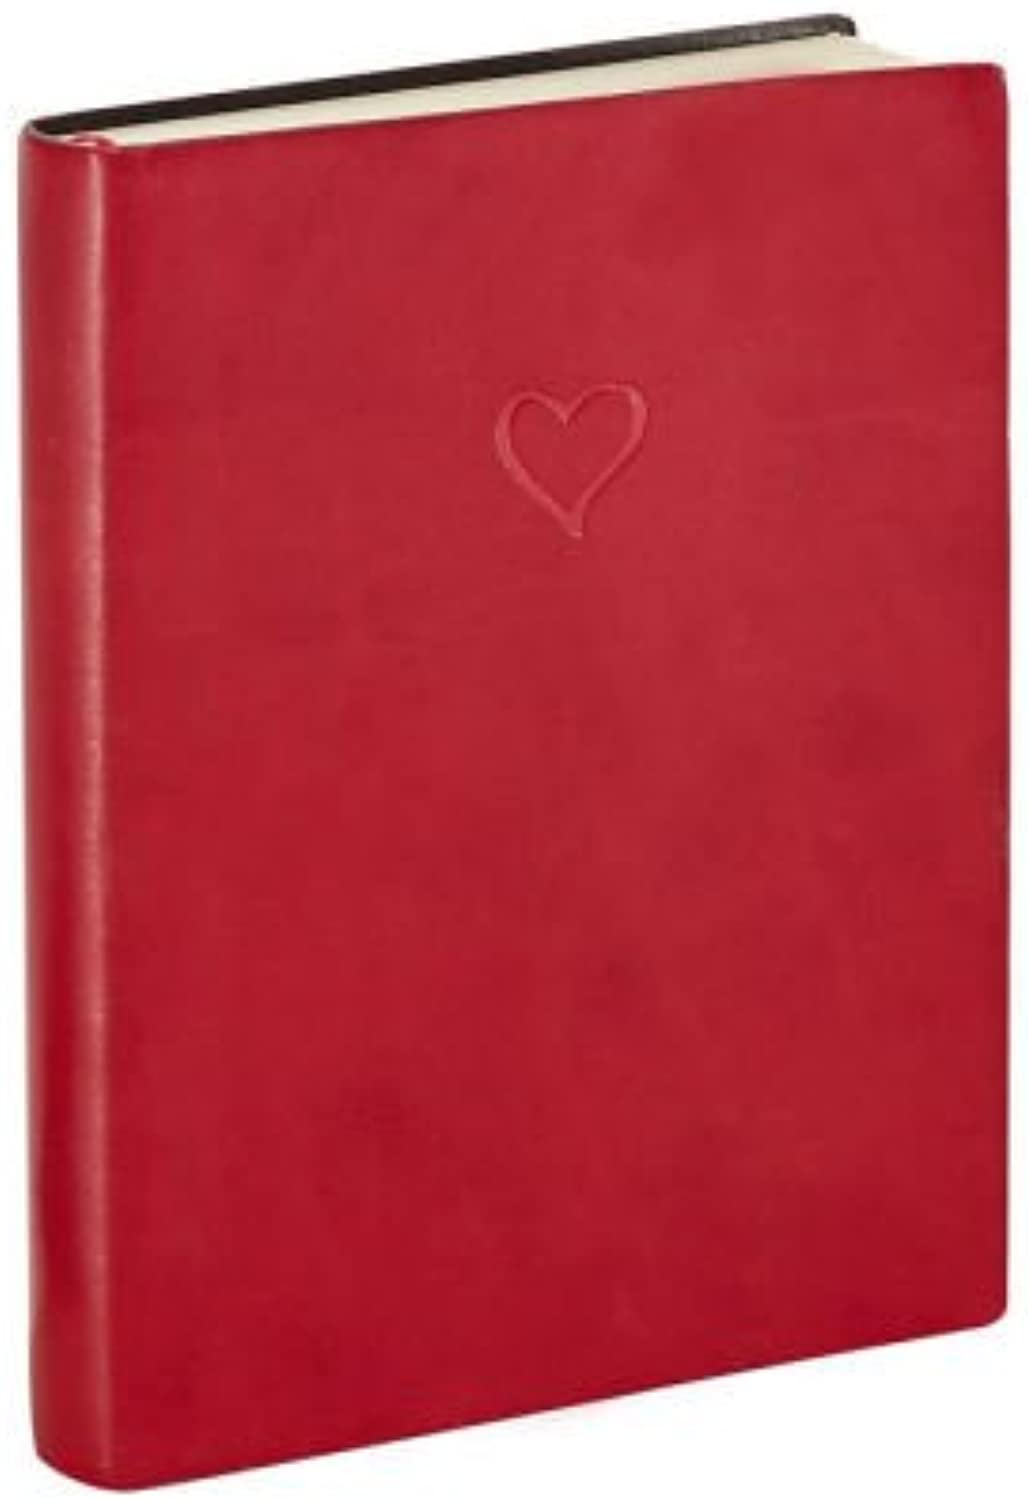 Italian Leather Journal Red Heart Lined Journal